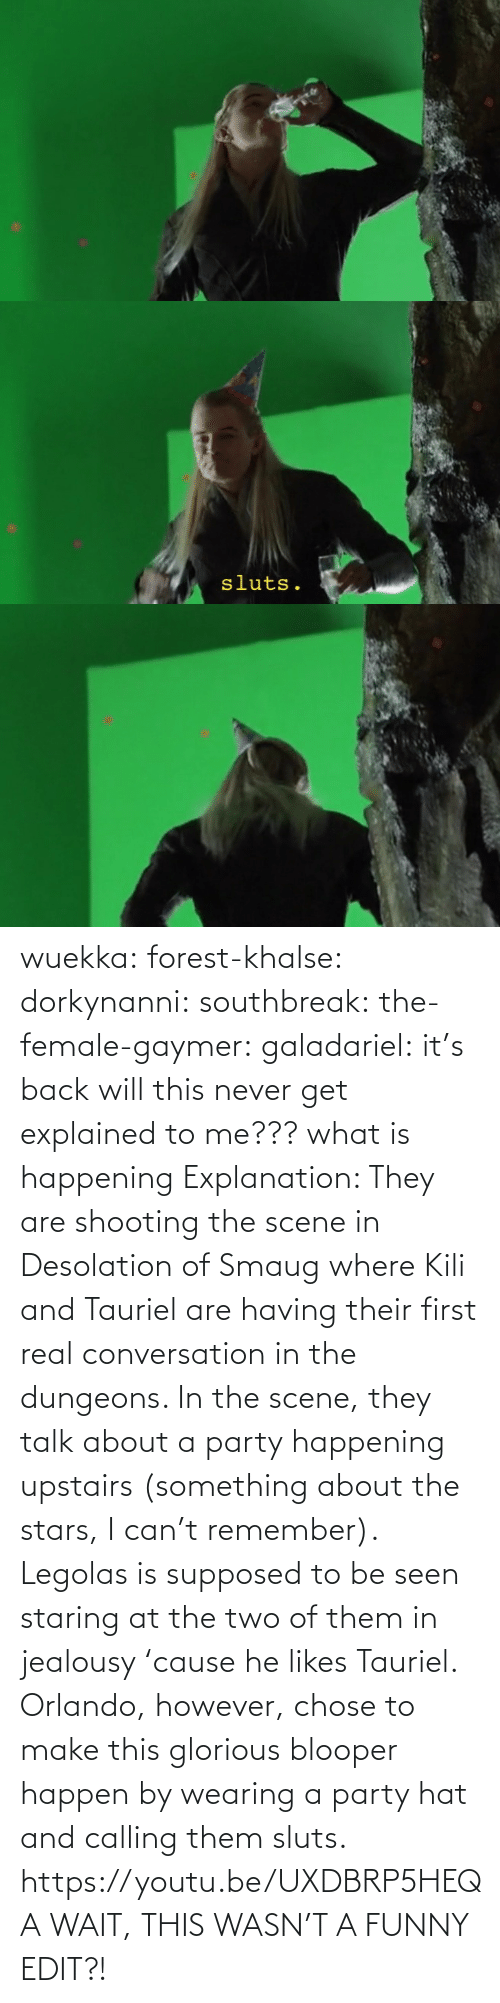 html: wuekka:  forest-khalse:   dorkynanni:  southbreak:   the-female-gaymer:   galadariel:  it's back   will this never get explained to me???    what is happening    Explanation:  They are shooting the scene in Desolation of Smaug where Kili and Tauriel are having their first real conversation in the dungeons.  In the scene, they talk about a party happening upstairs (something about the stars, I can't remember). Legolas is supposed to be seen staring at the two of them in jealousy 'cause he likes Tauriel.  Orlando, however, chose to make this glorious blooper happen by wearing a party hat and calling them sluts.    https://youtu.be/UXDBRP5HEQA    WAIT, THIS WASN'T A FUNNY EDIT?!